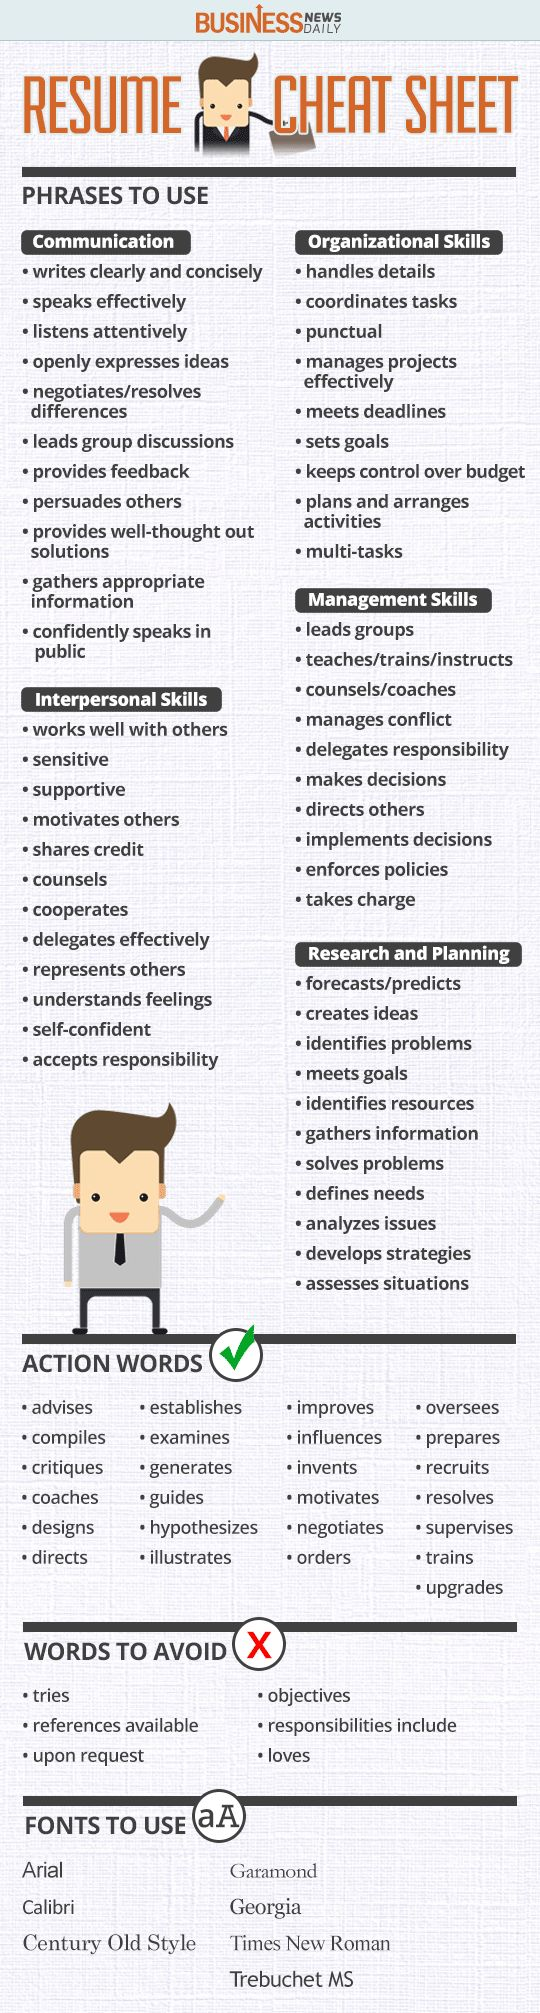 Opposenewapstandardsus  Winsome  Ideas About Resume On Pinterest  Cv Format Resume Cv And  With Glamorous Resume Cheat Sheet Infographic Andrews Almost Done With A Complete Unit On Employment Which With Adorable What Is The Purpose Of A Resume Also Public Relations Resume In Addition Restaurant Server Resume And Resume Worksheet As Well As Custodian Resume Additionally Sample Administrative Assistant Resume From Pinterestcom With Opposenewapstandardsus  Glamorous  Ideas About Resume On Pinterest  Cv Format Resume Cv And  With Adorable Resume Cheat Sheet Infographic Andrews Almost Done With A Complete Unit On Employment Which And Winsome What Is The Purpose Of A Resume Also Public Relations Resume In Addition Restaurant Server Resume From Pinterestcom